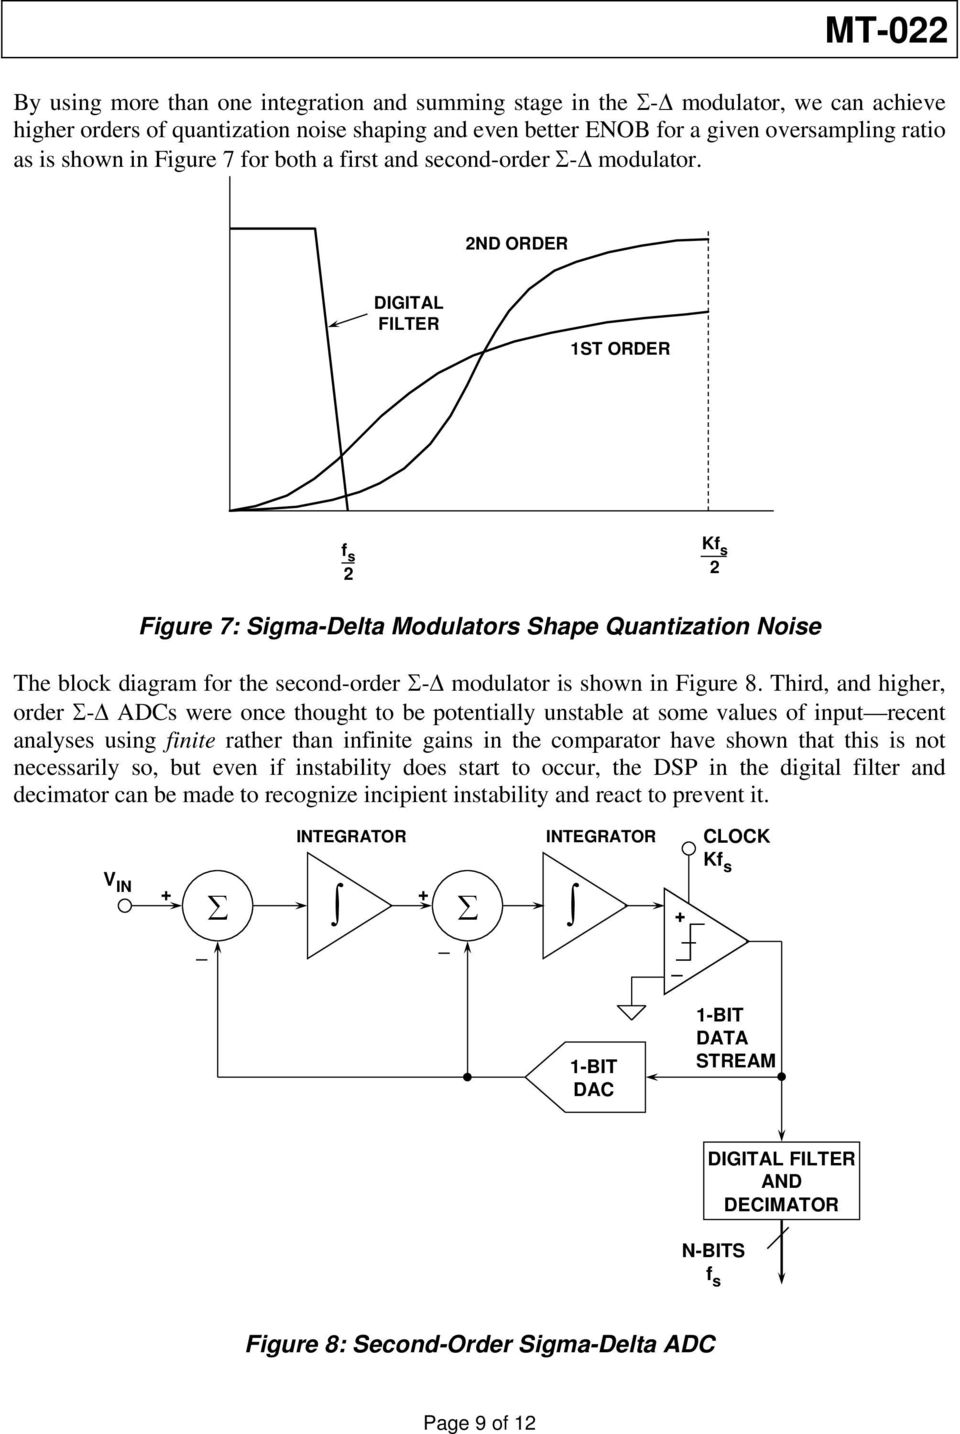 ADC Architectures III: Sigma-Delta ADC Basics  by Walt Kester - PDF